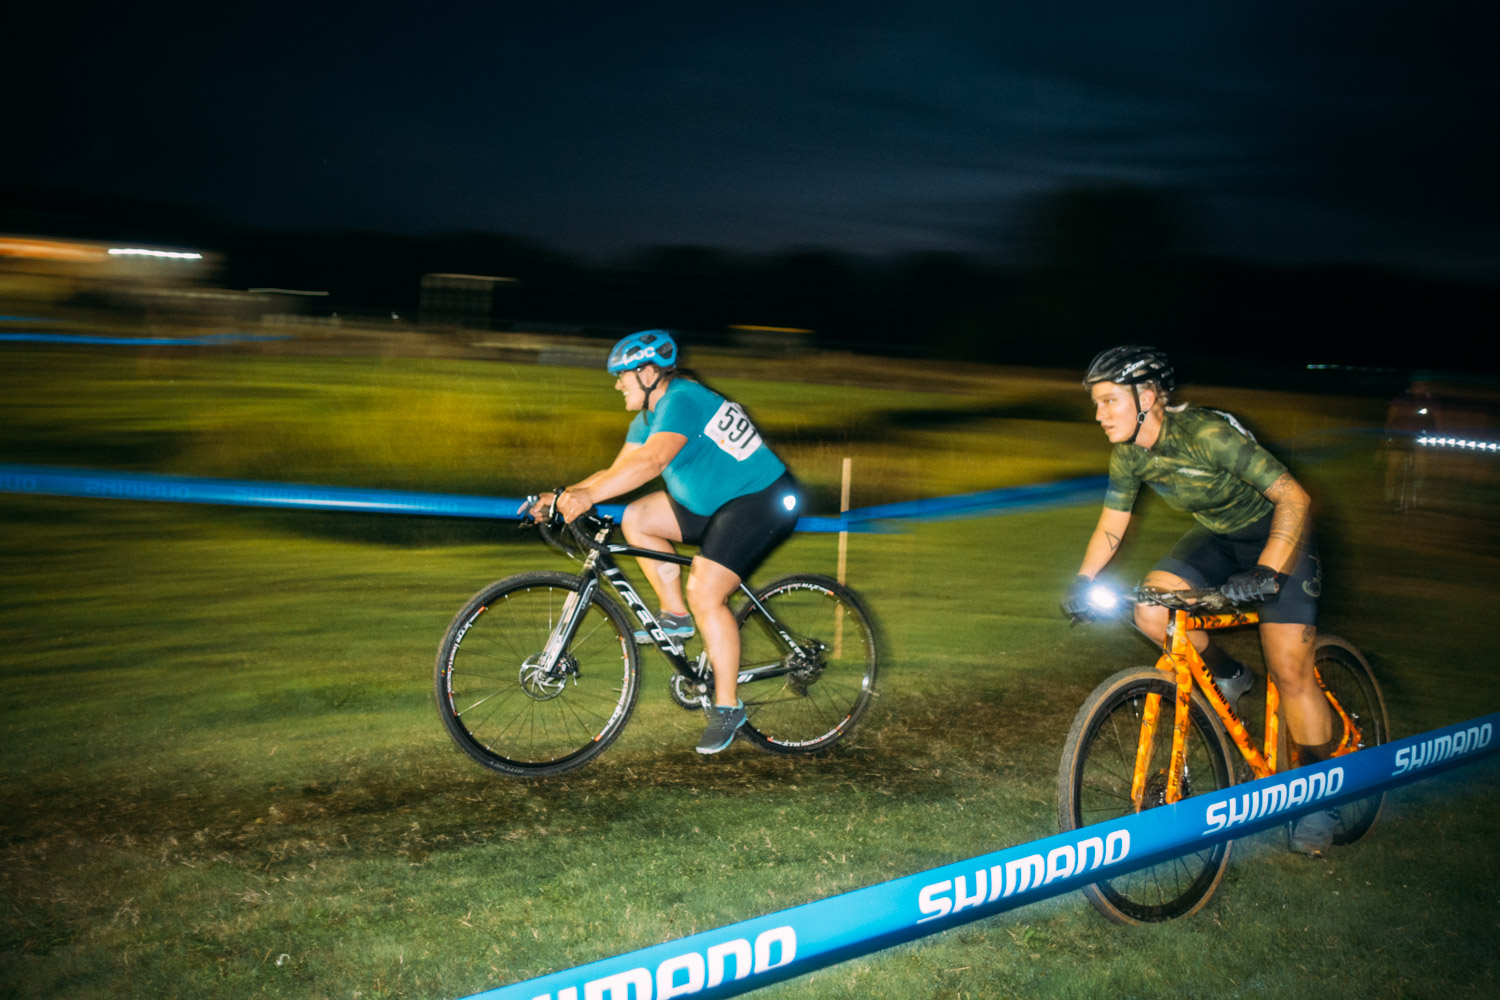 Cyclocross18_TrophyCup3-69SS_SquareSpace.jpg